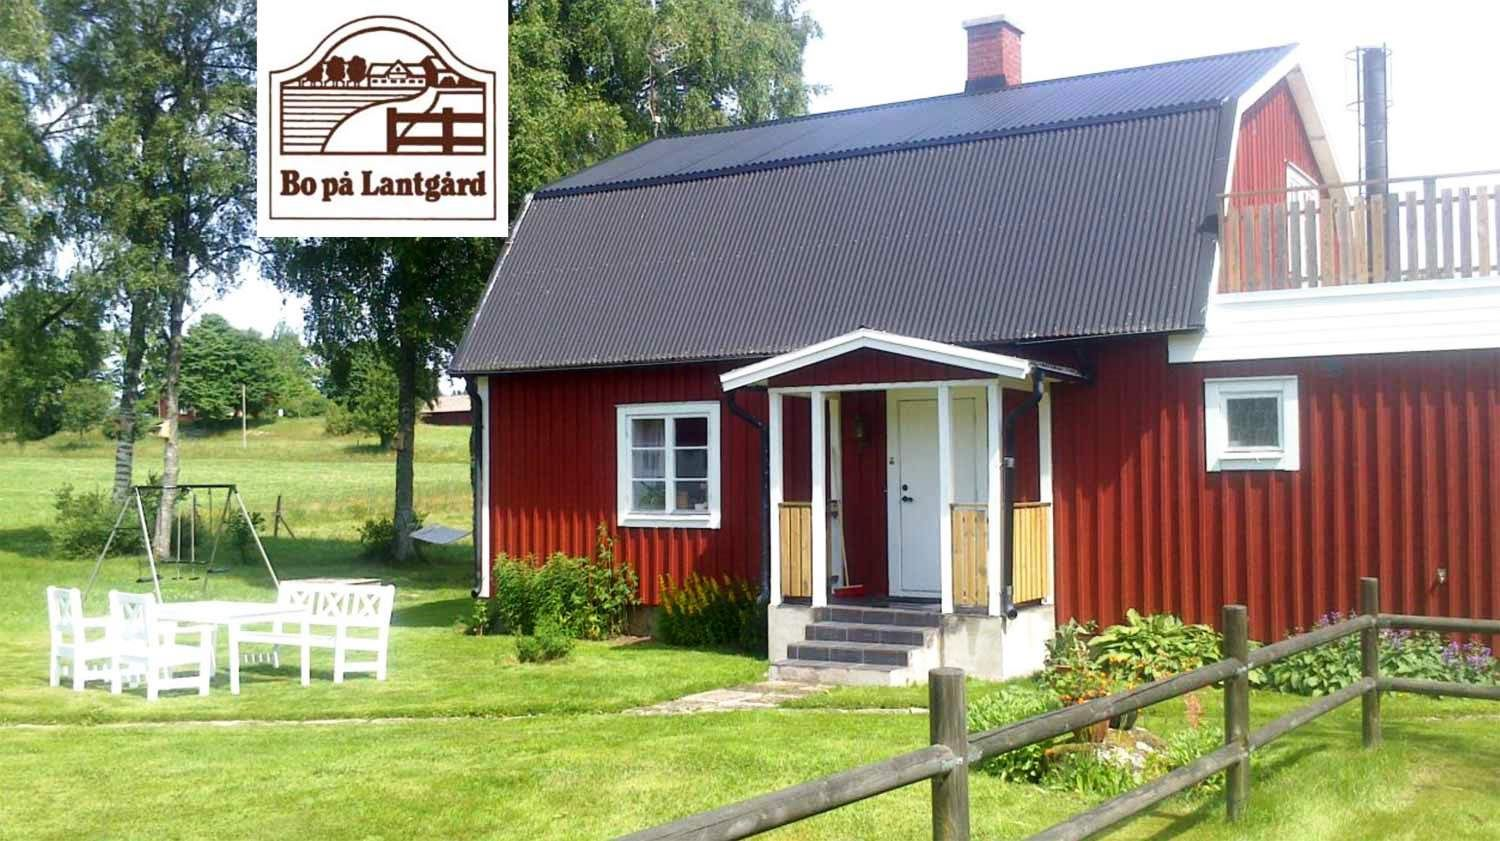 The little house in Älmhult